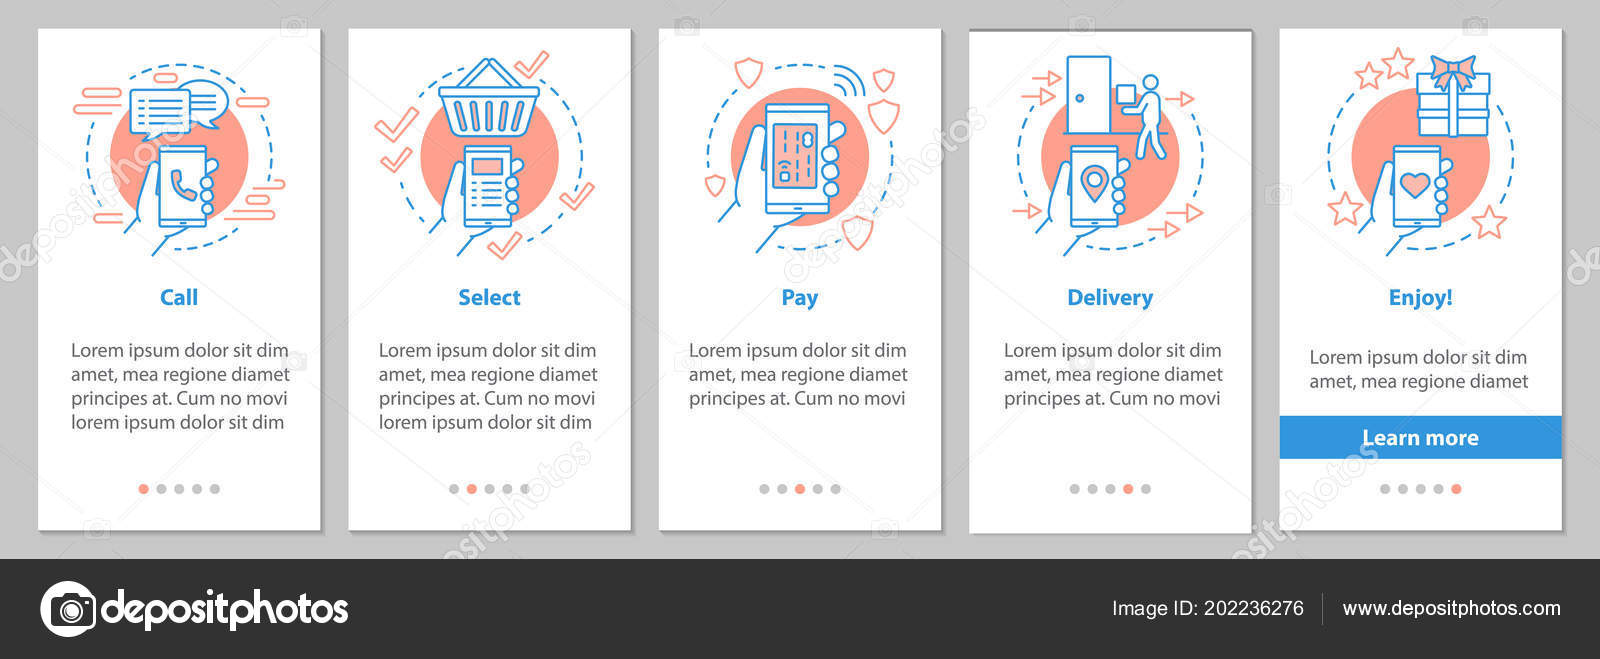 Online Shopping Onboarding Mobile App Page Screen Linear Concepts